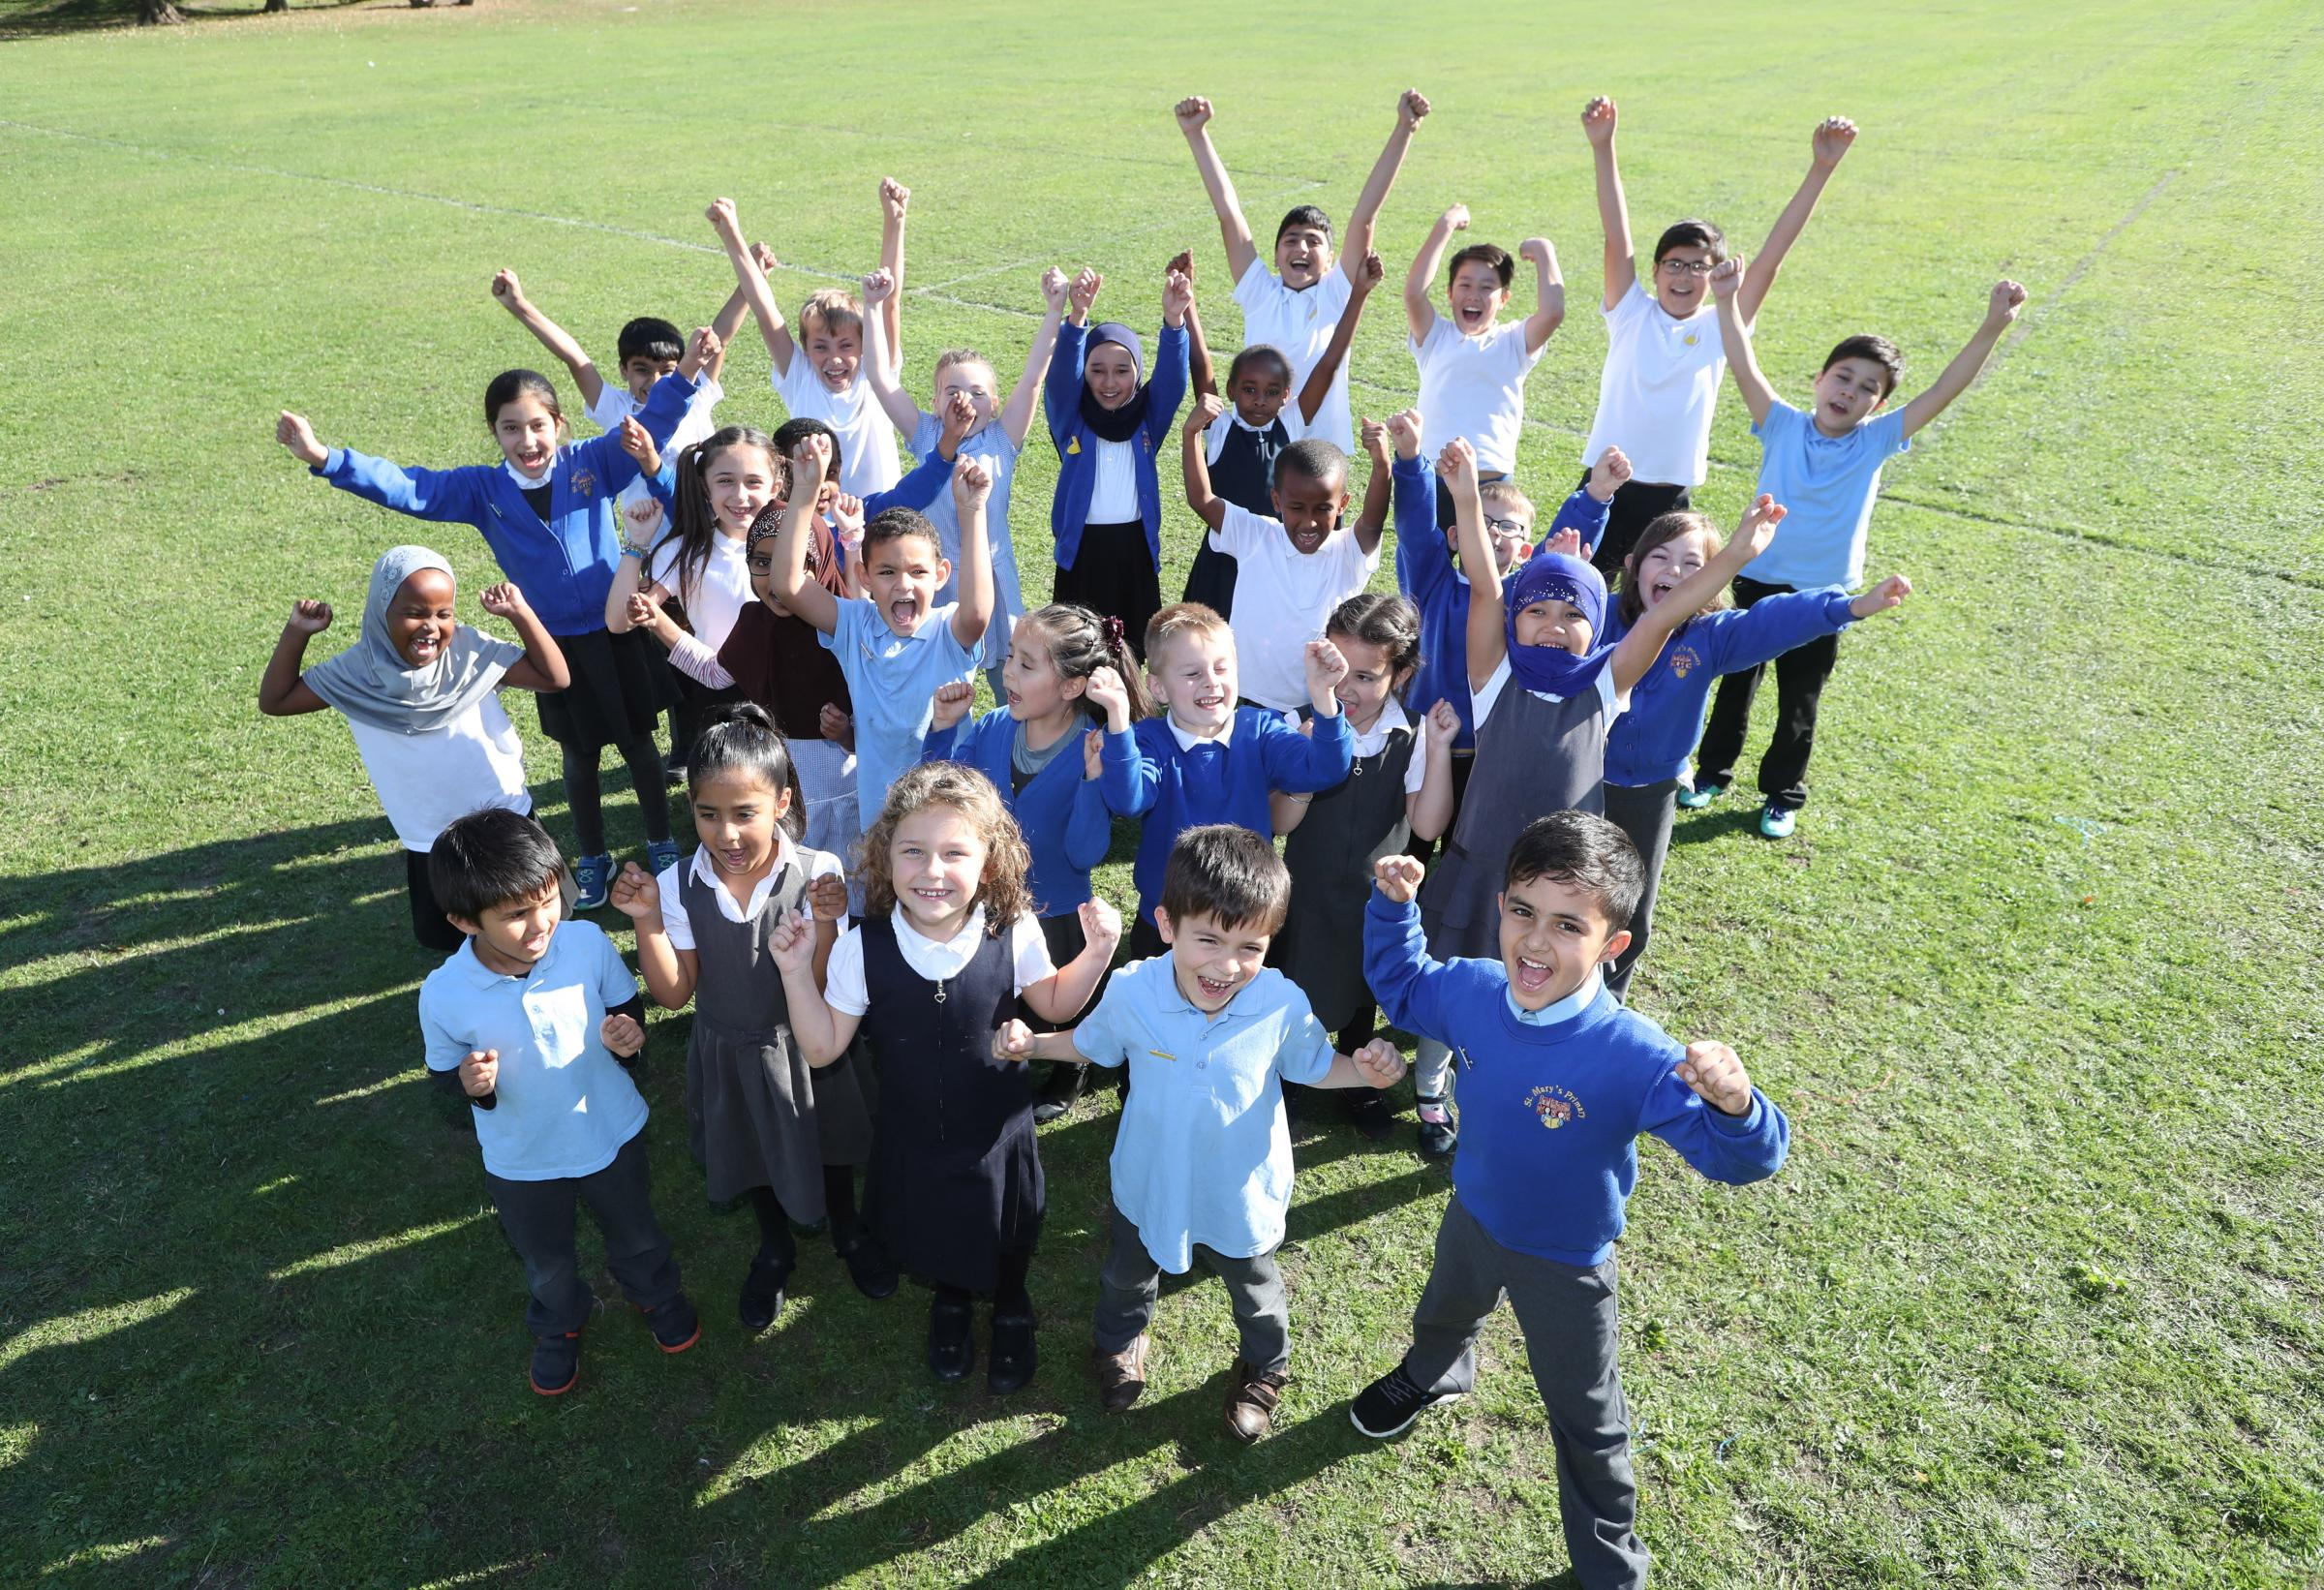 School report at St Mary's Primary School - School councillors and prefects pictured on the school's playing fields.